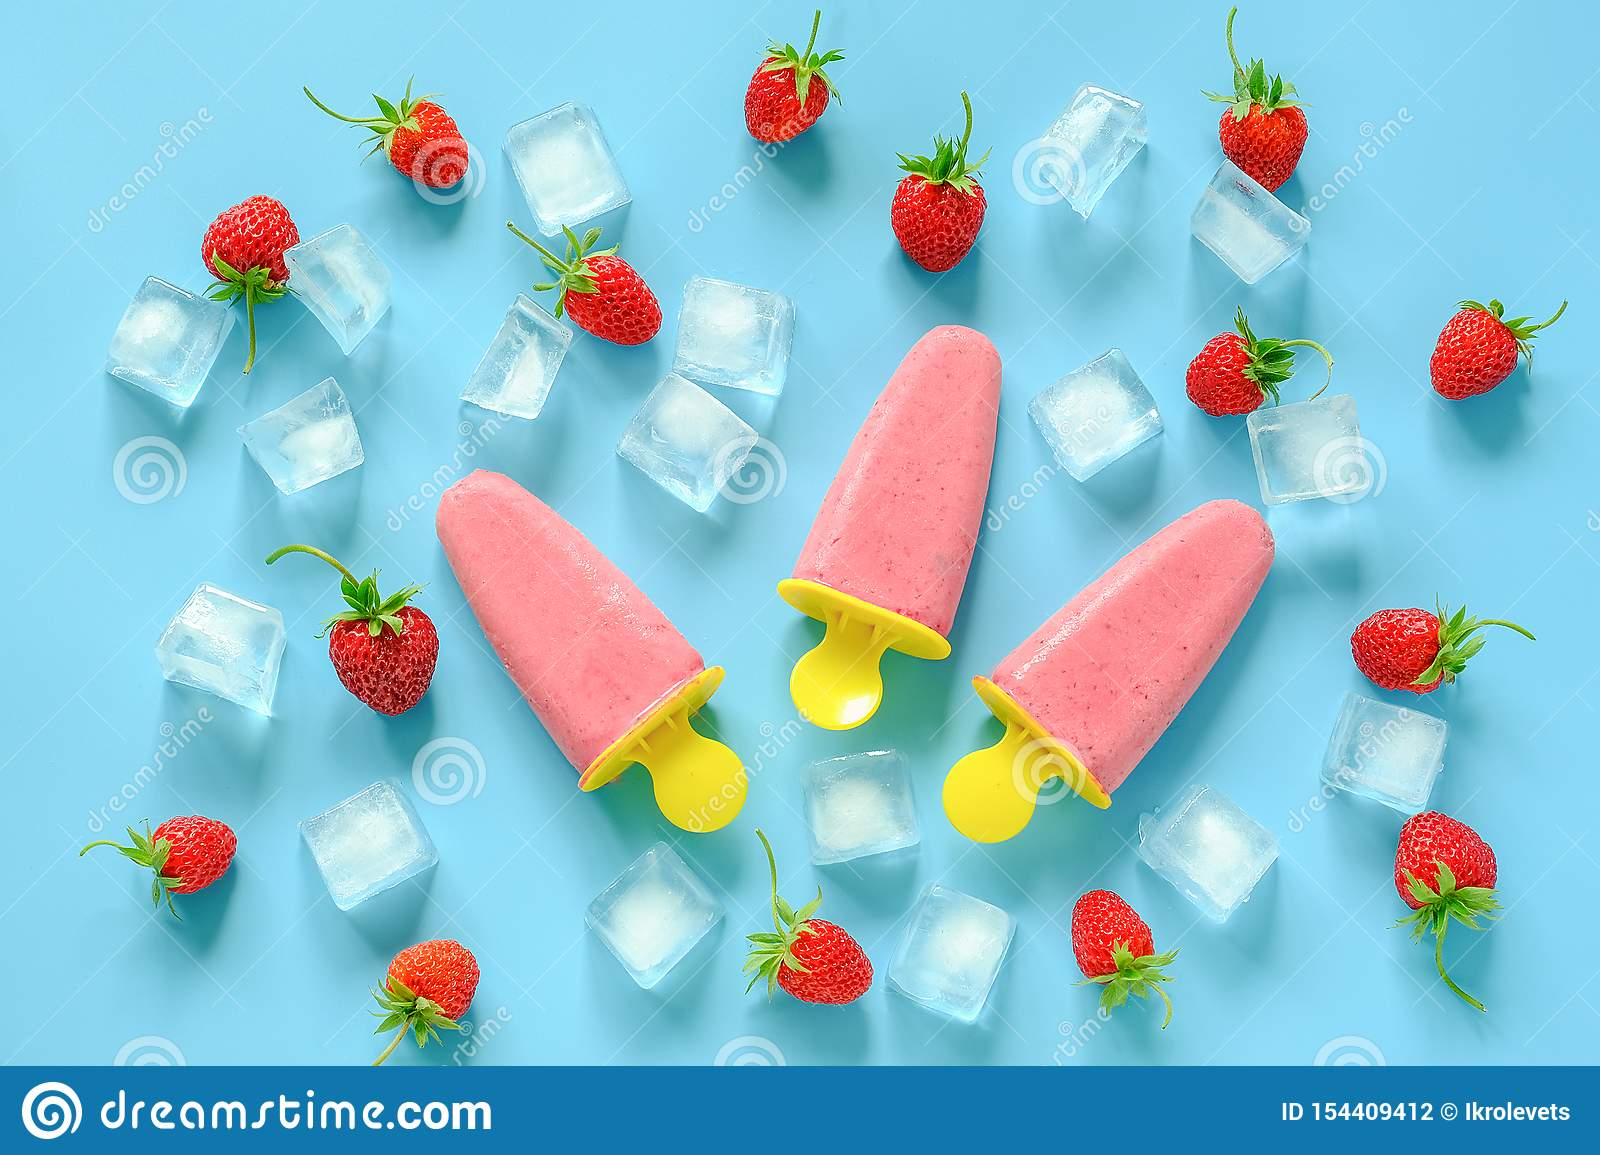 Homemade popsicles. Natural ice cream in bright plastic molds, strawberries and ice cubes on blue background. Top view Flat lay